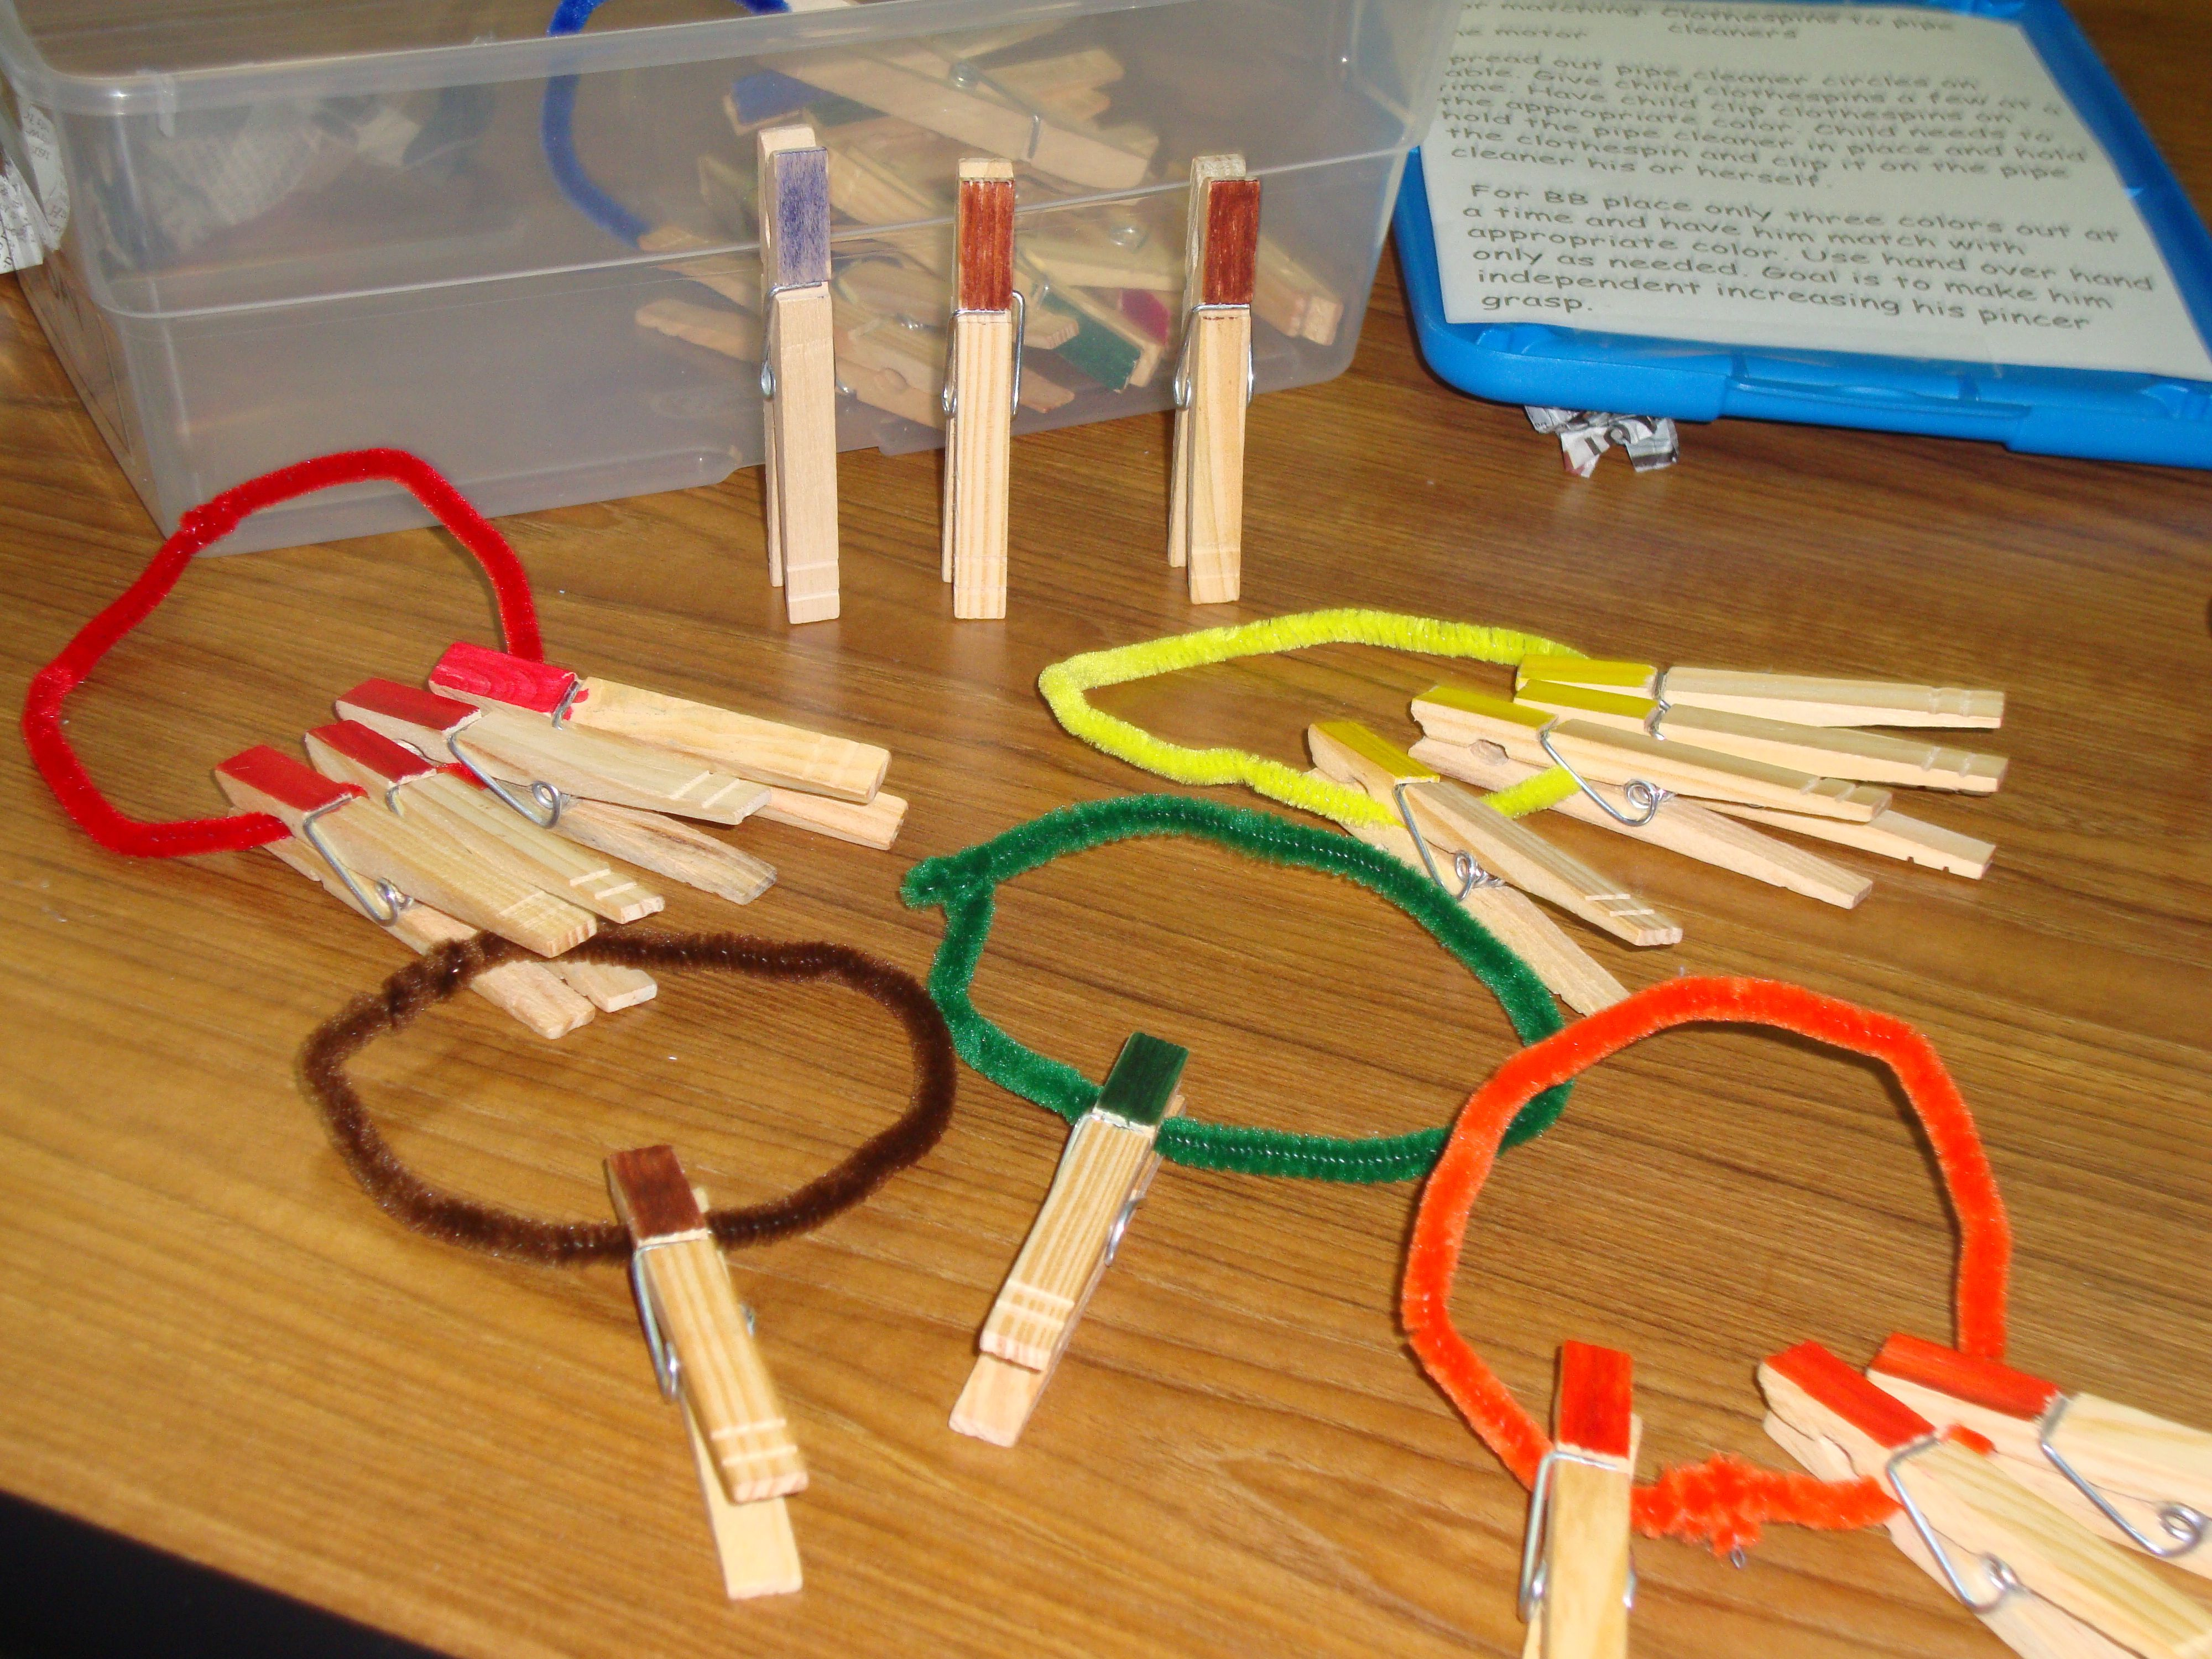 Color Matching: Clothespins to Pipe Cleaners: There are four clothespins to match with each pipe cleaner. The clothespins have been colored to coordinate with the color of the pipe cleaner. A variation could be to write the color word on the clothespin rather than coloring it. It would increase the difficulty.